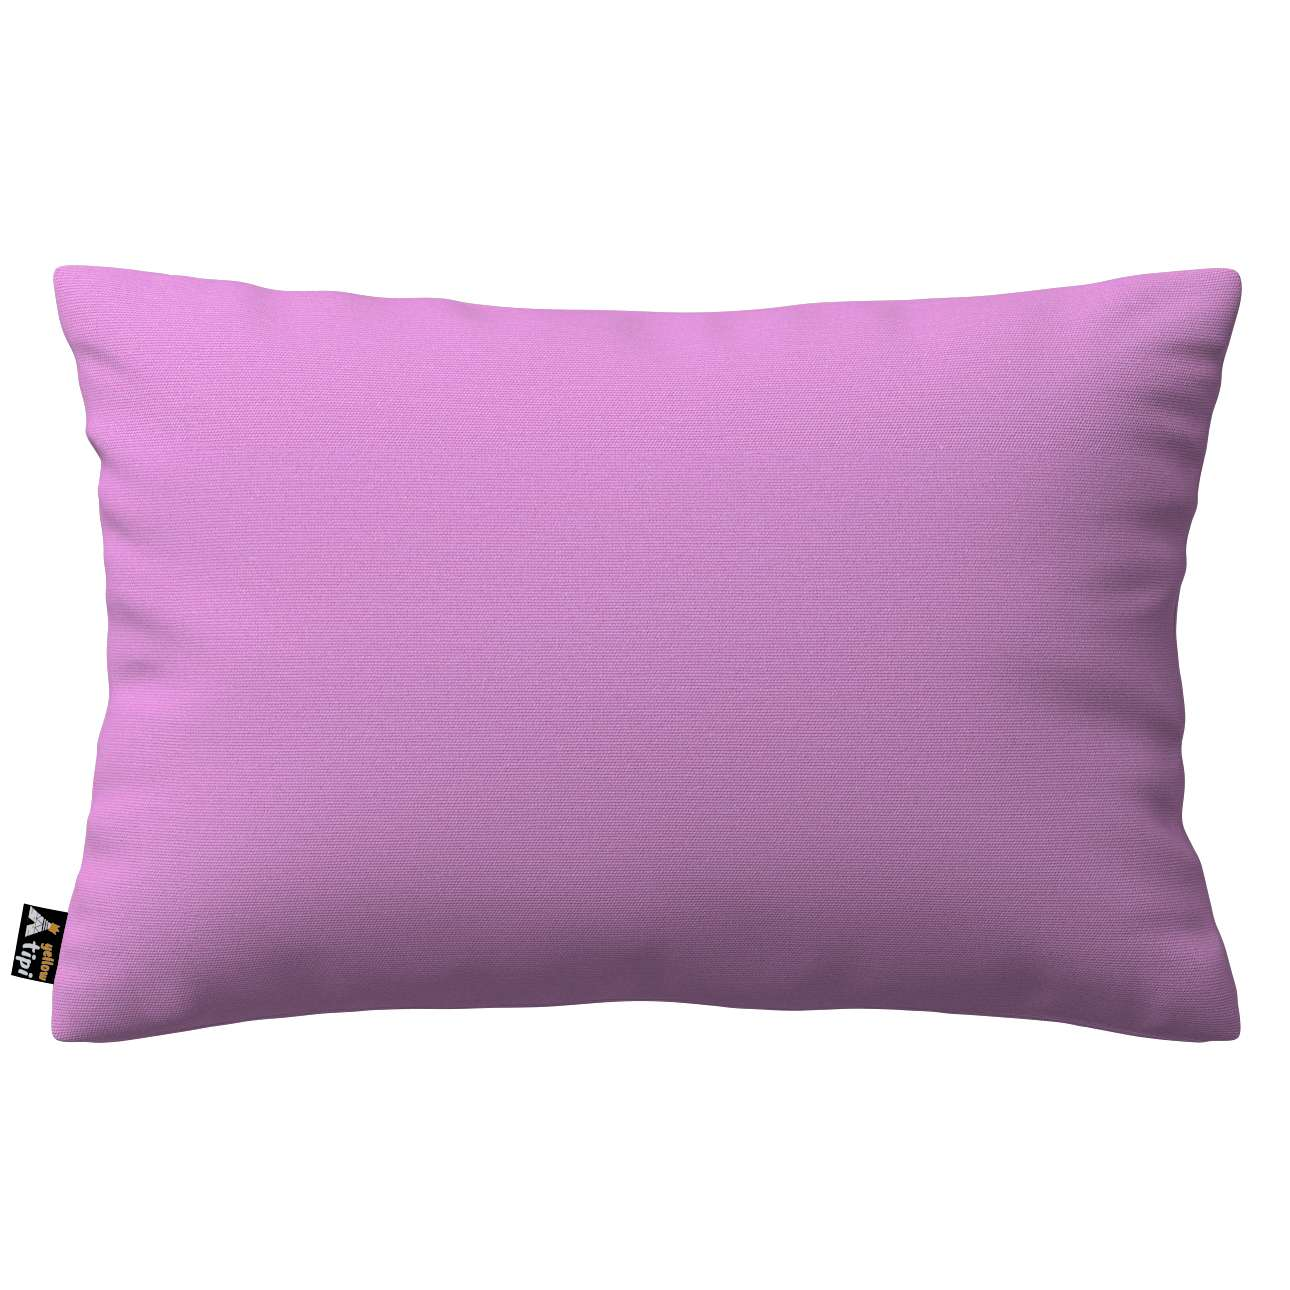 Milly rectangular cushion cover in collection Happiness, fabric: 133-38